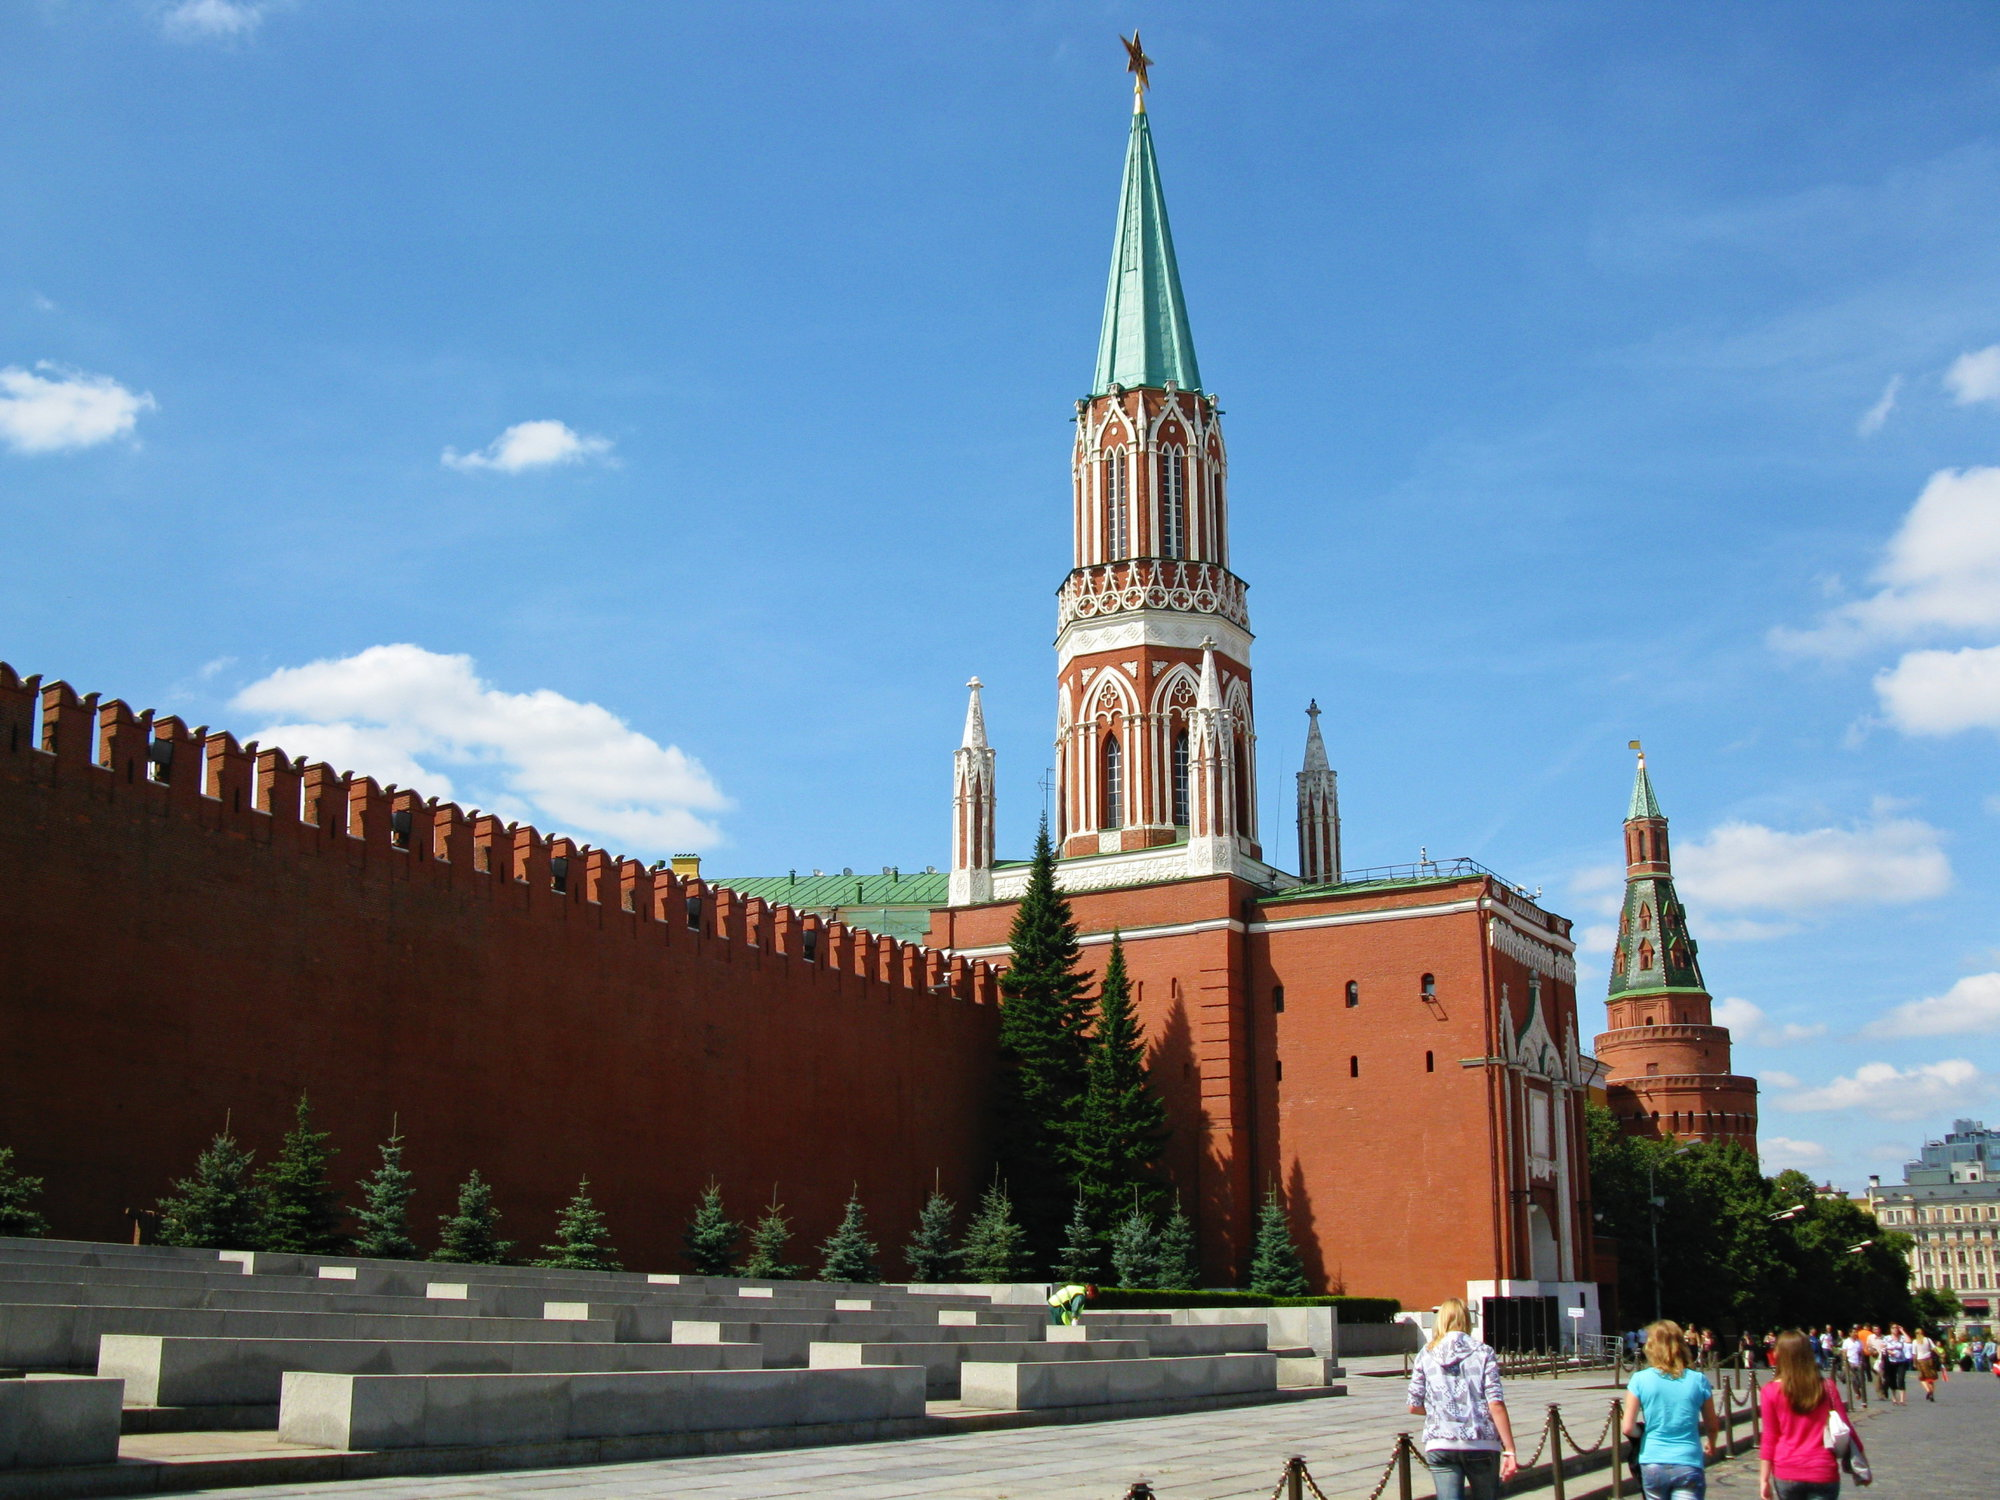 by the wall of Kremlin, there is a cemetery with Lenin's mistress Inessa Armand